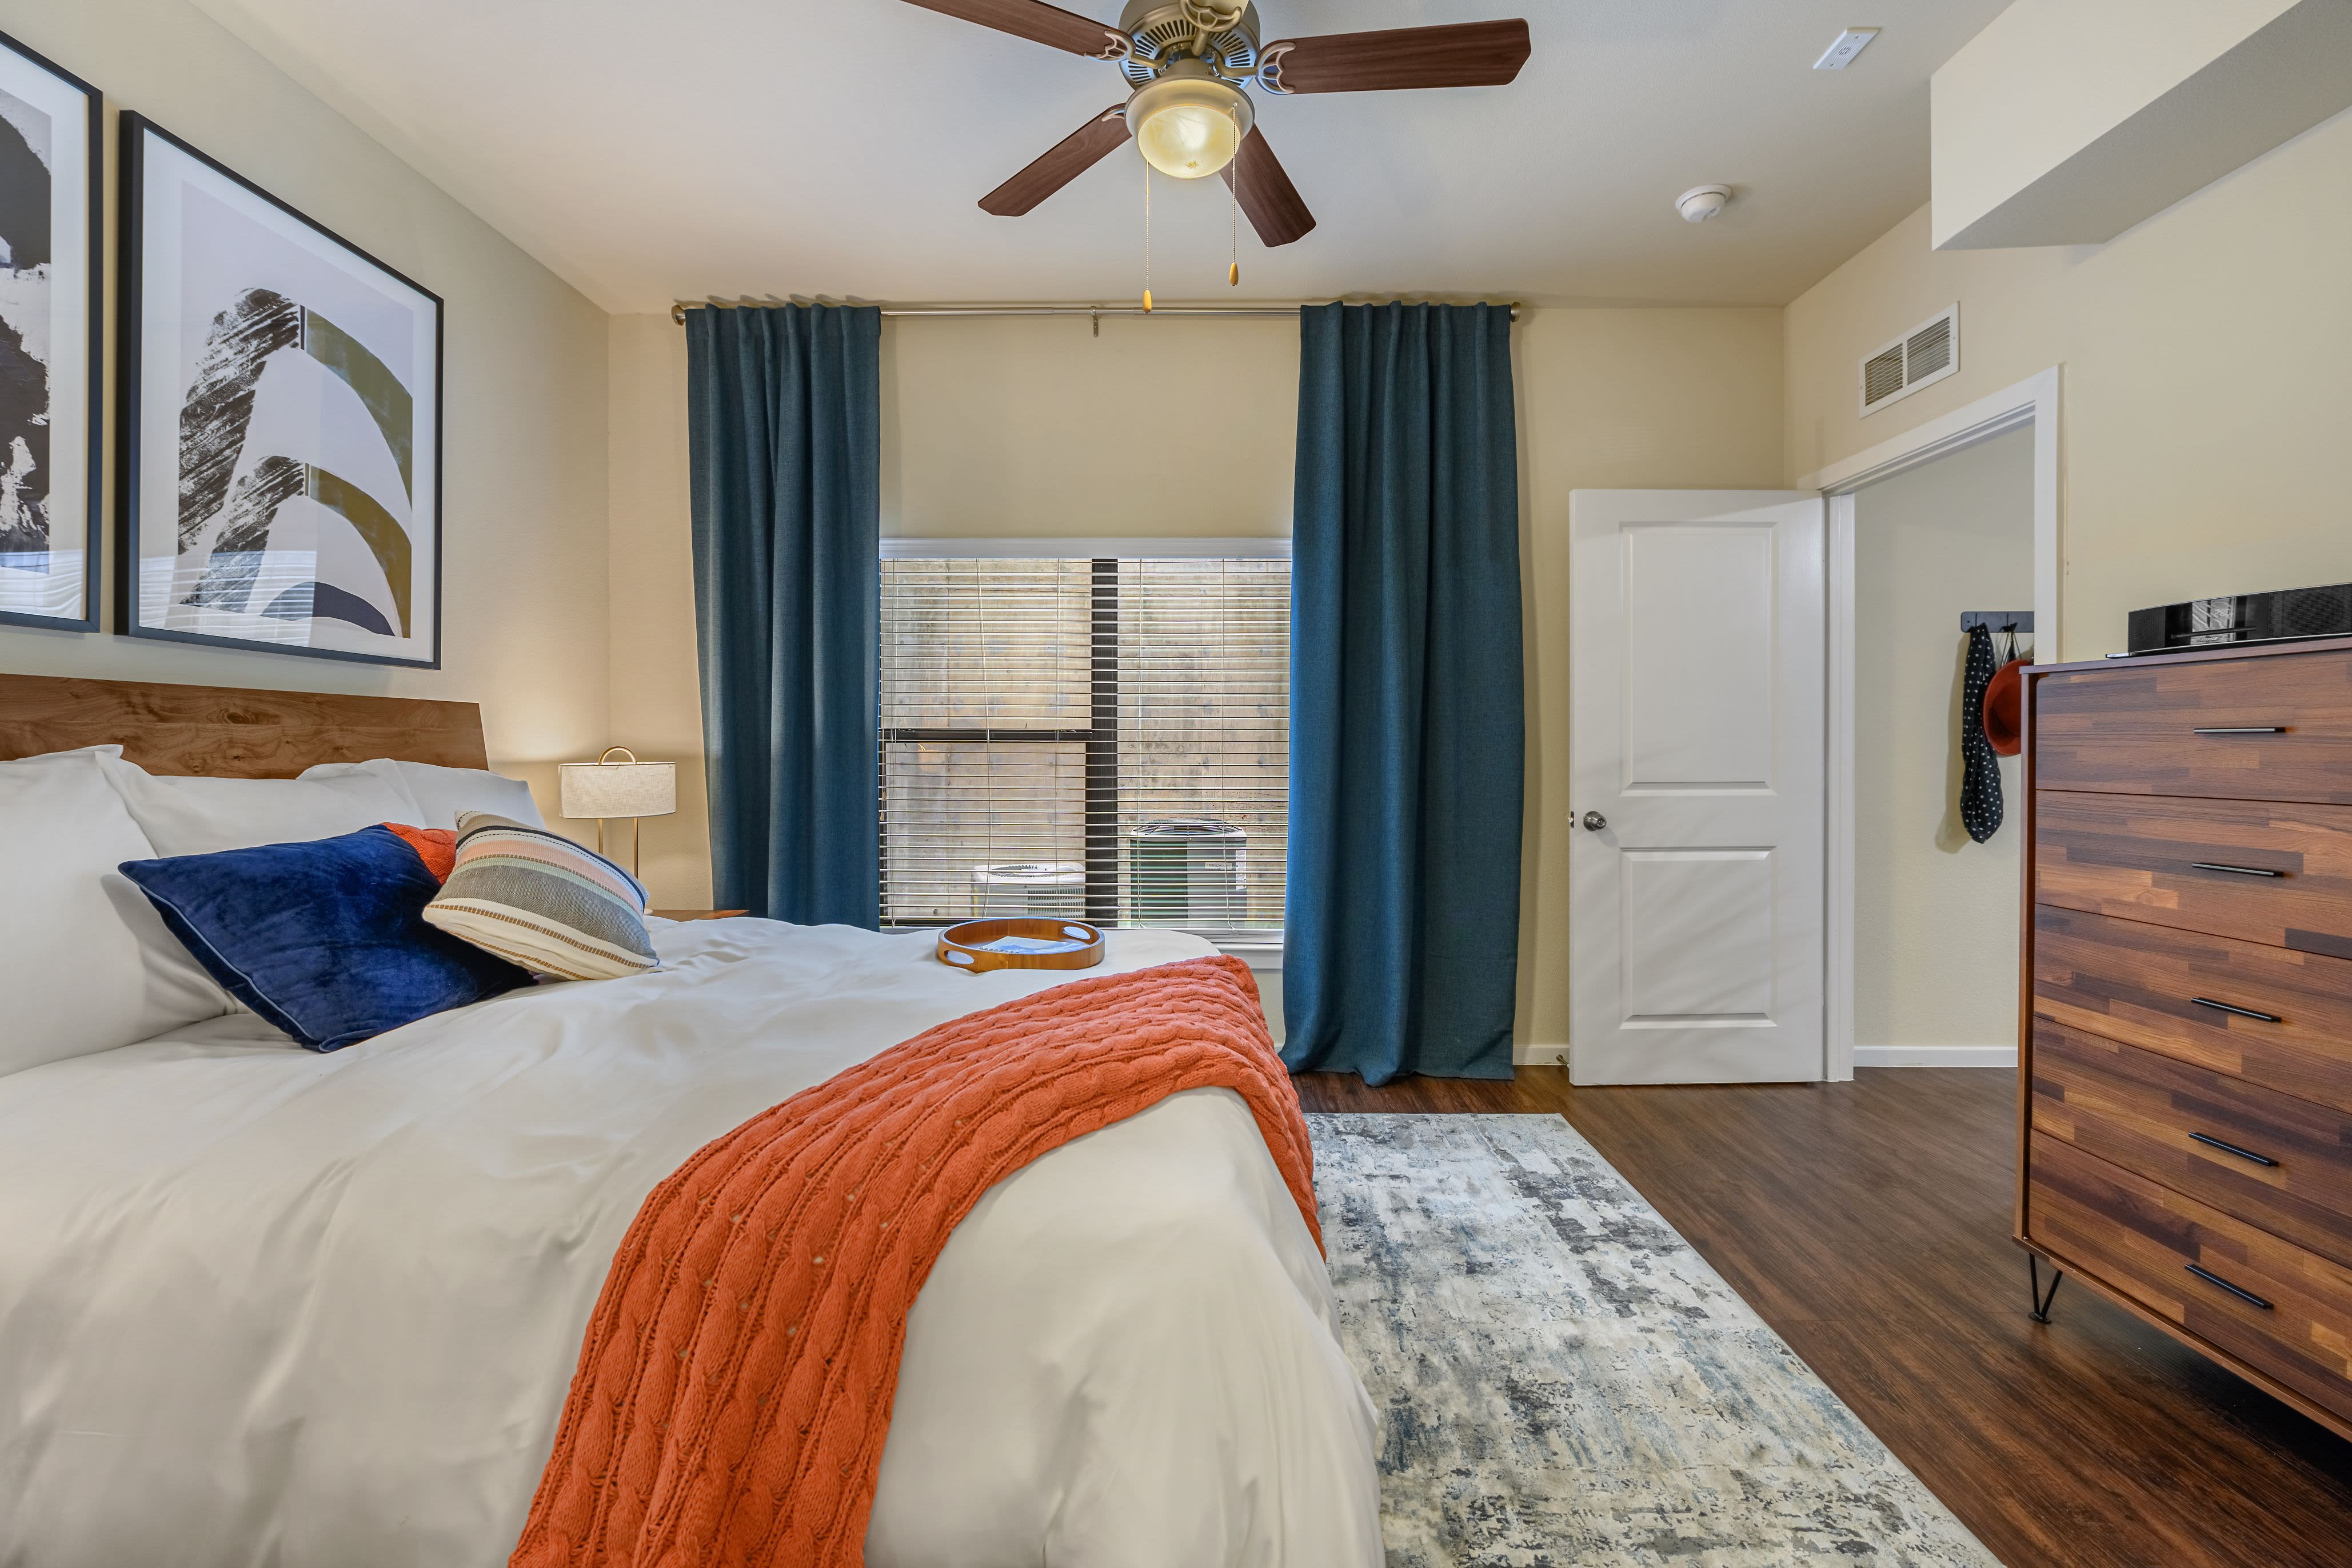 Bedroom with wood style flooring and rug at Marquis SoCo in Austin, Texas